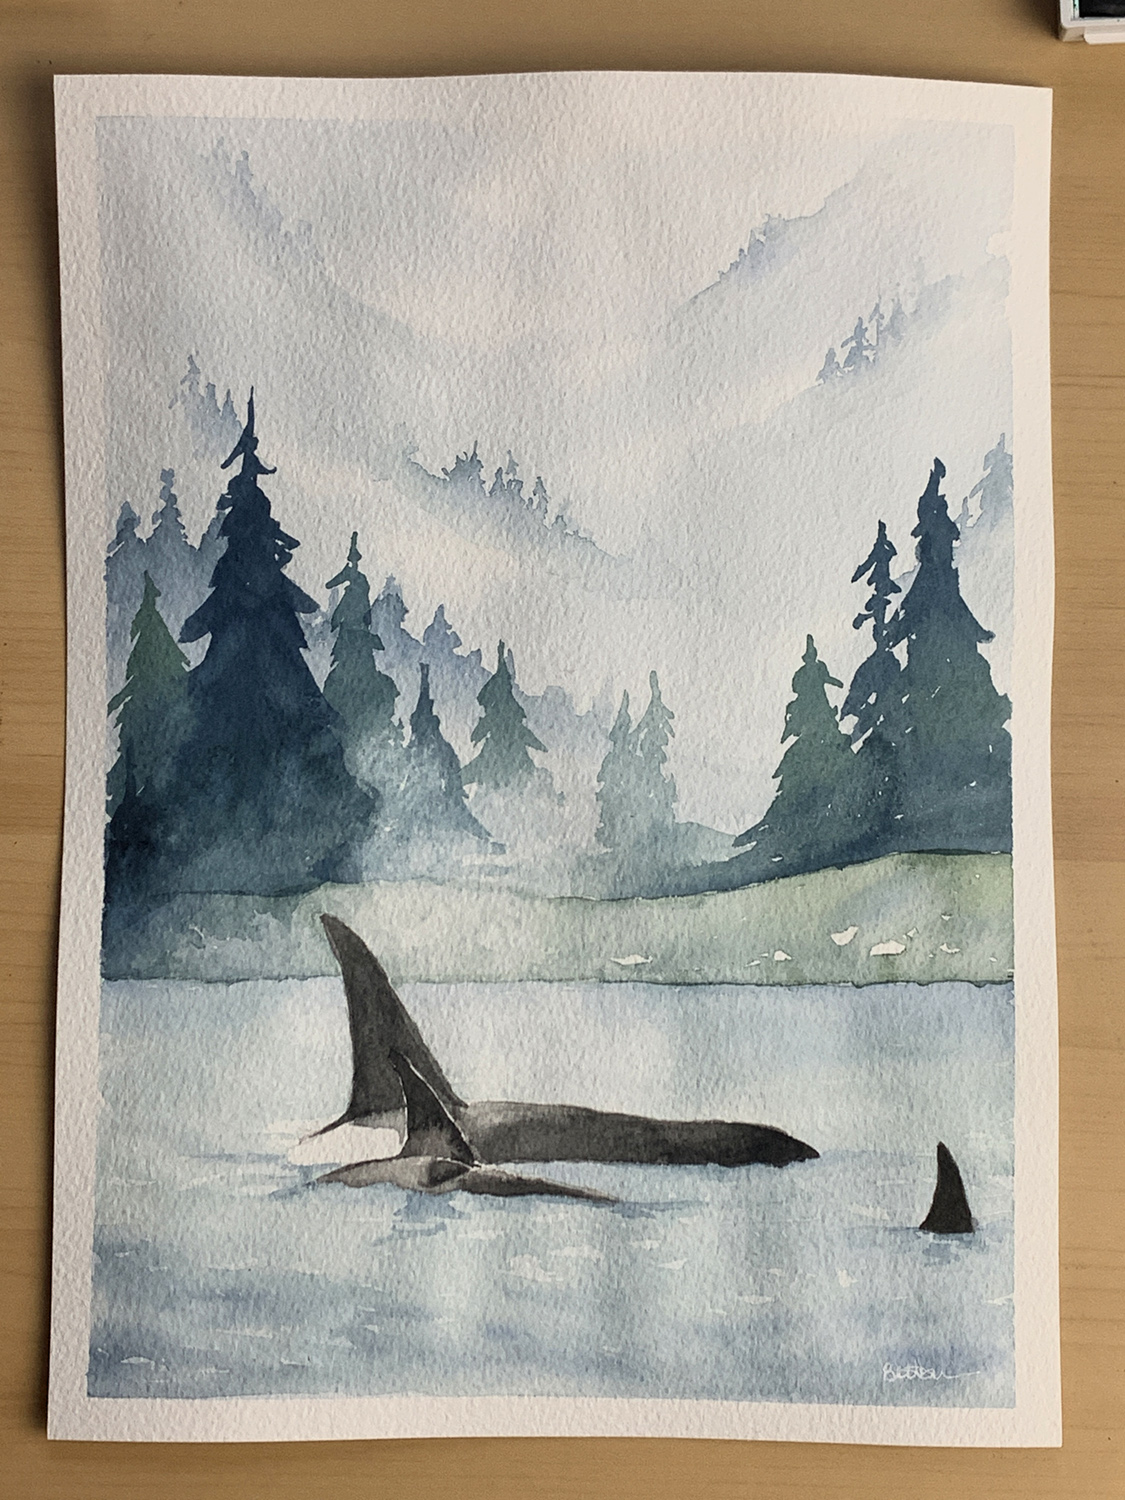 Leaping orca